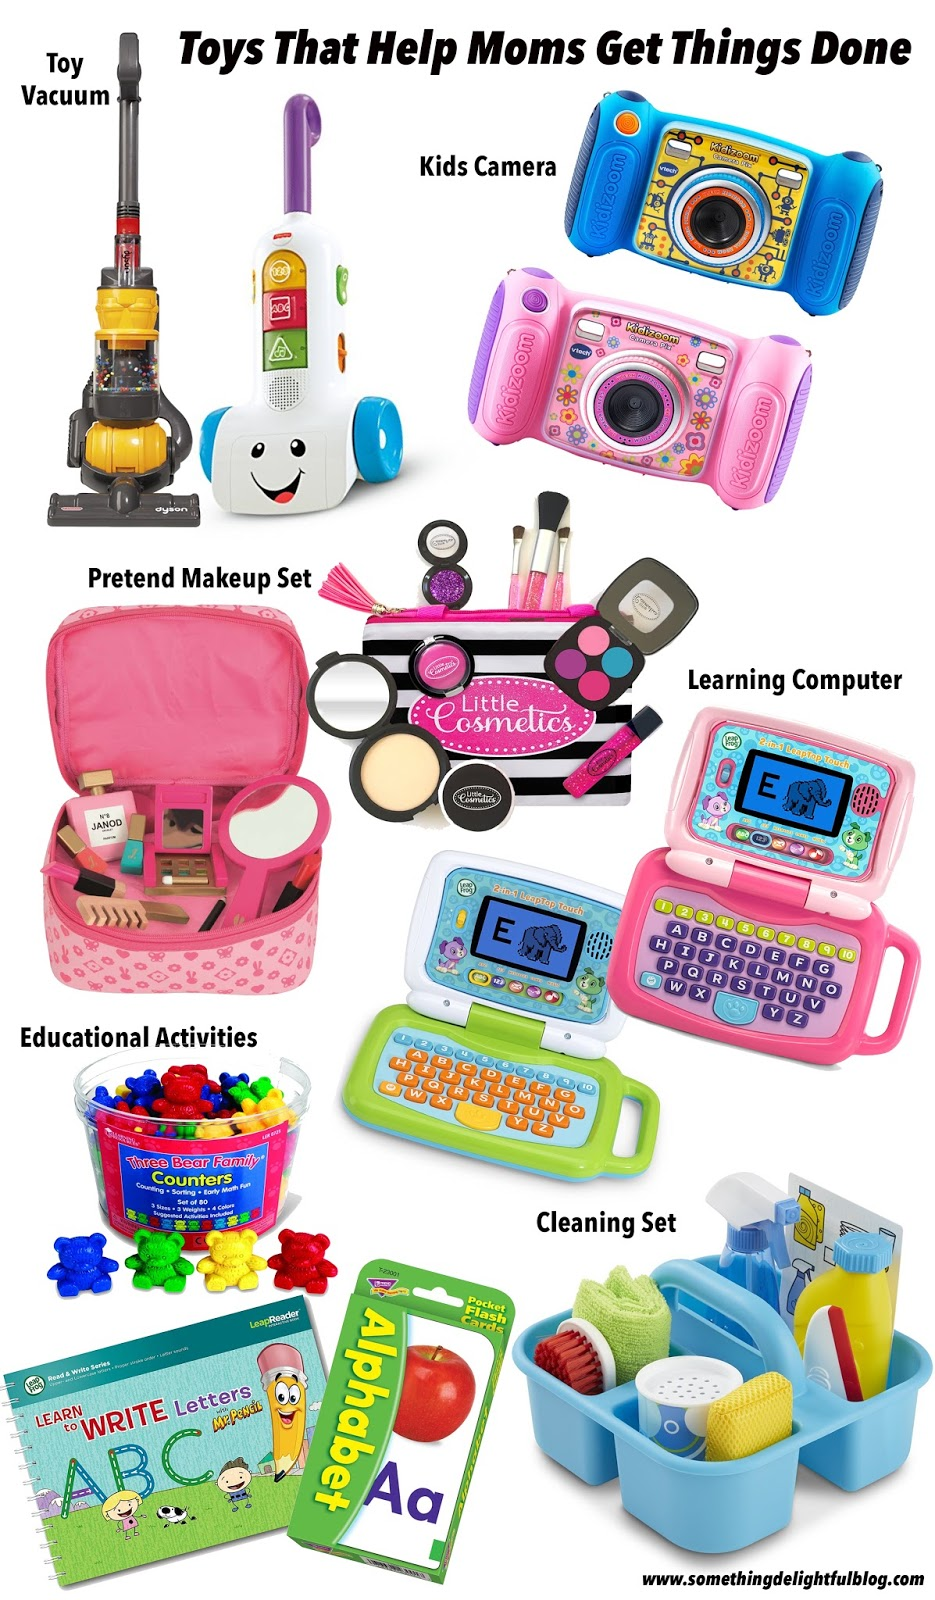 Toys that help moms get things done - Click through to read more on Something Delightful Blog